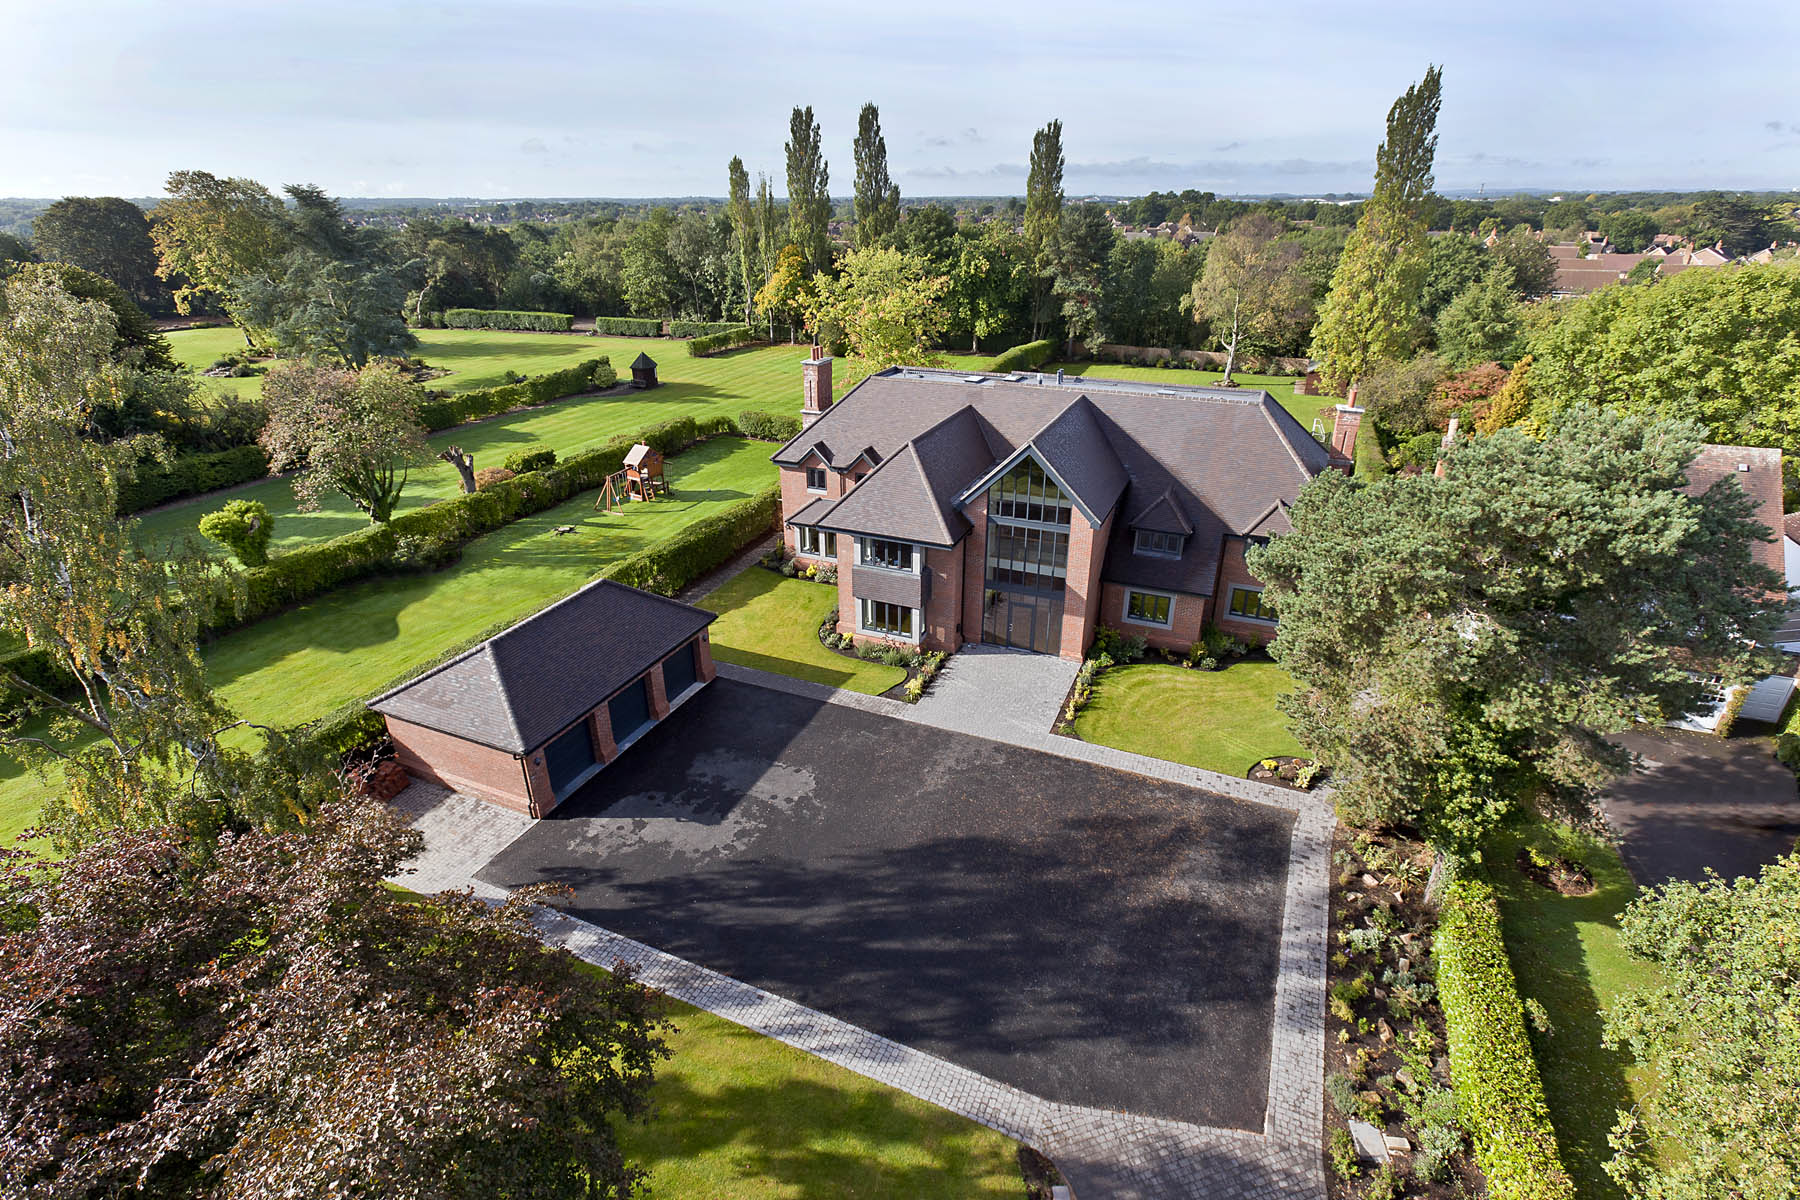 112 Widney Manor Road Solihull - Plan View